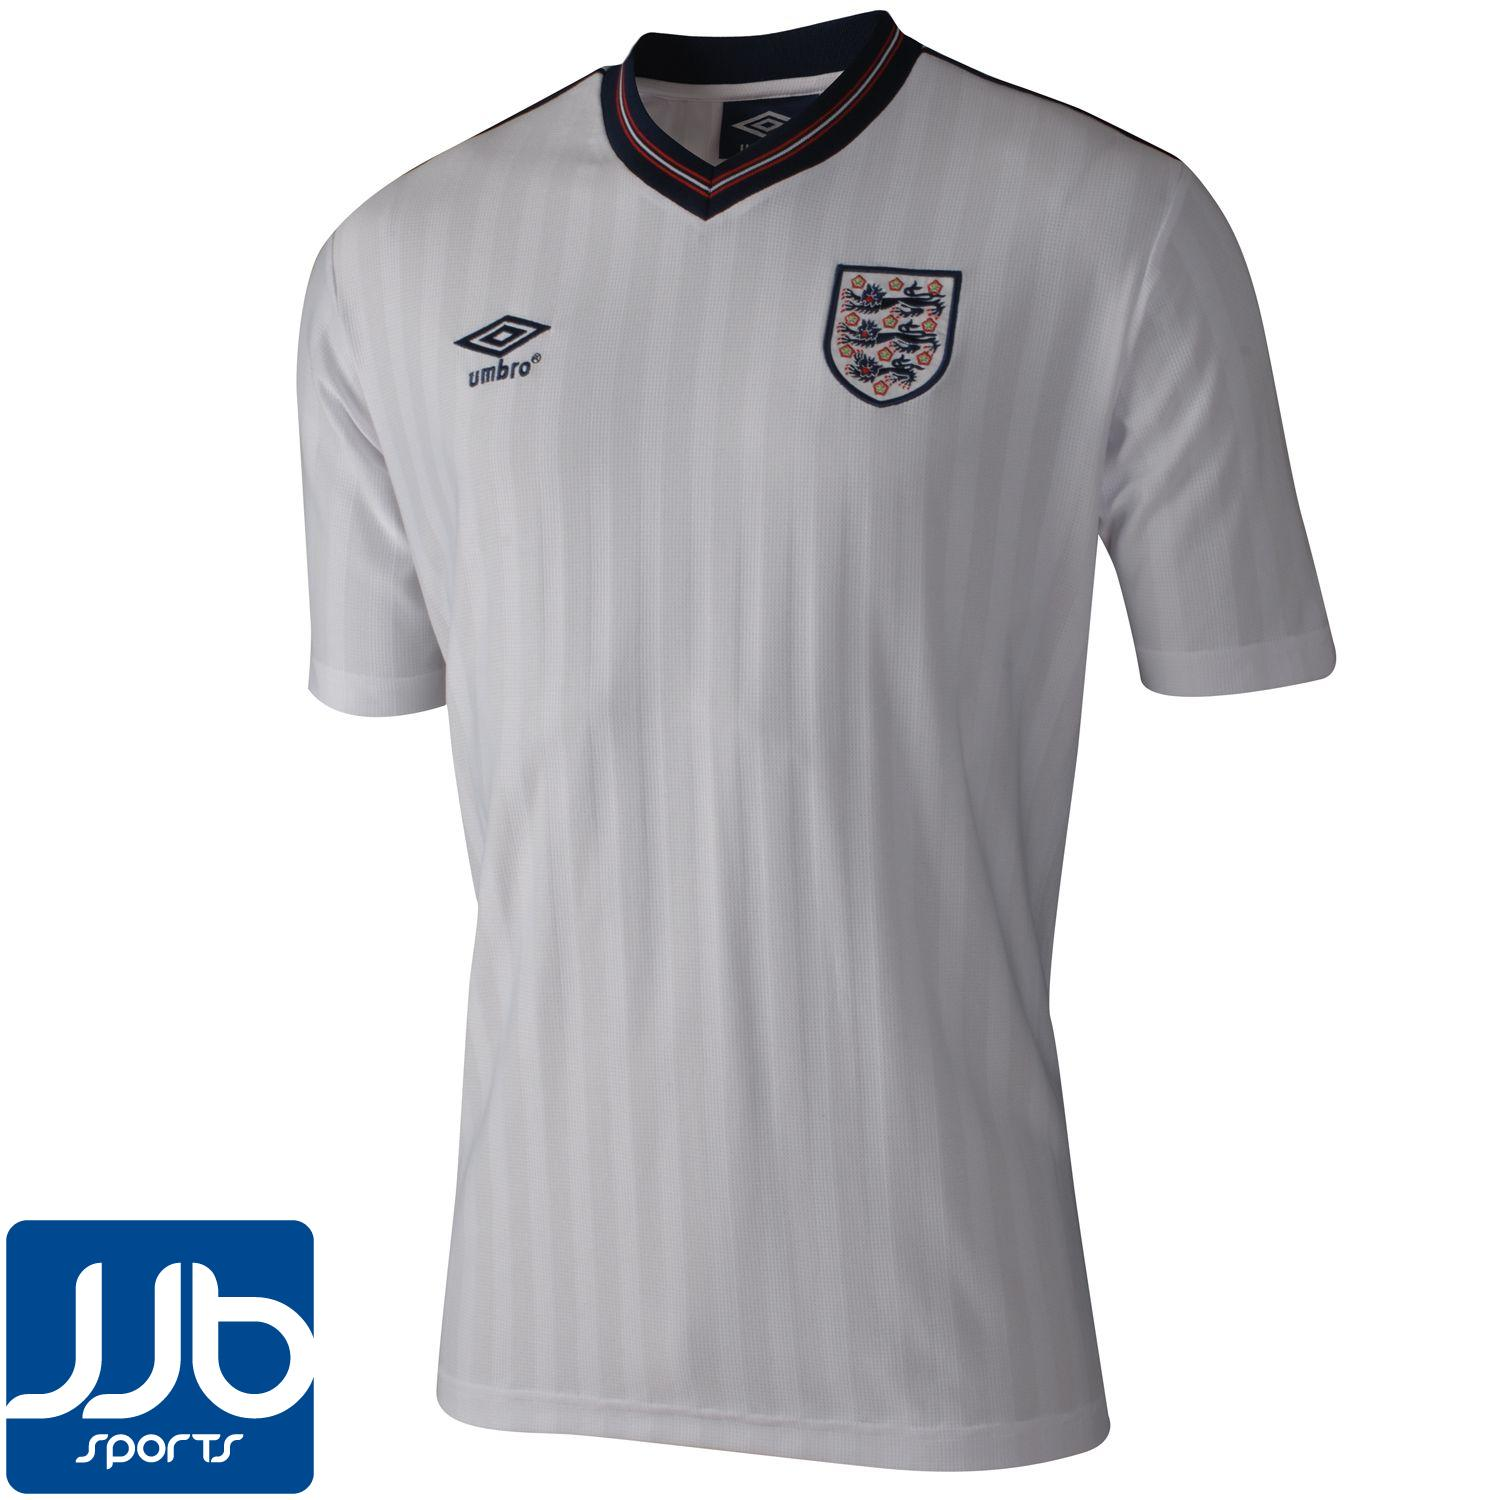 Umbro-England-Mexico-86-World-Cup-Home-Shirt